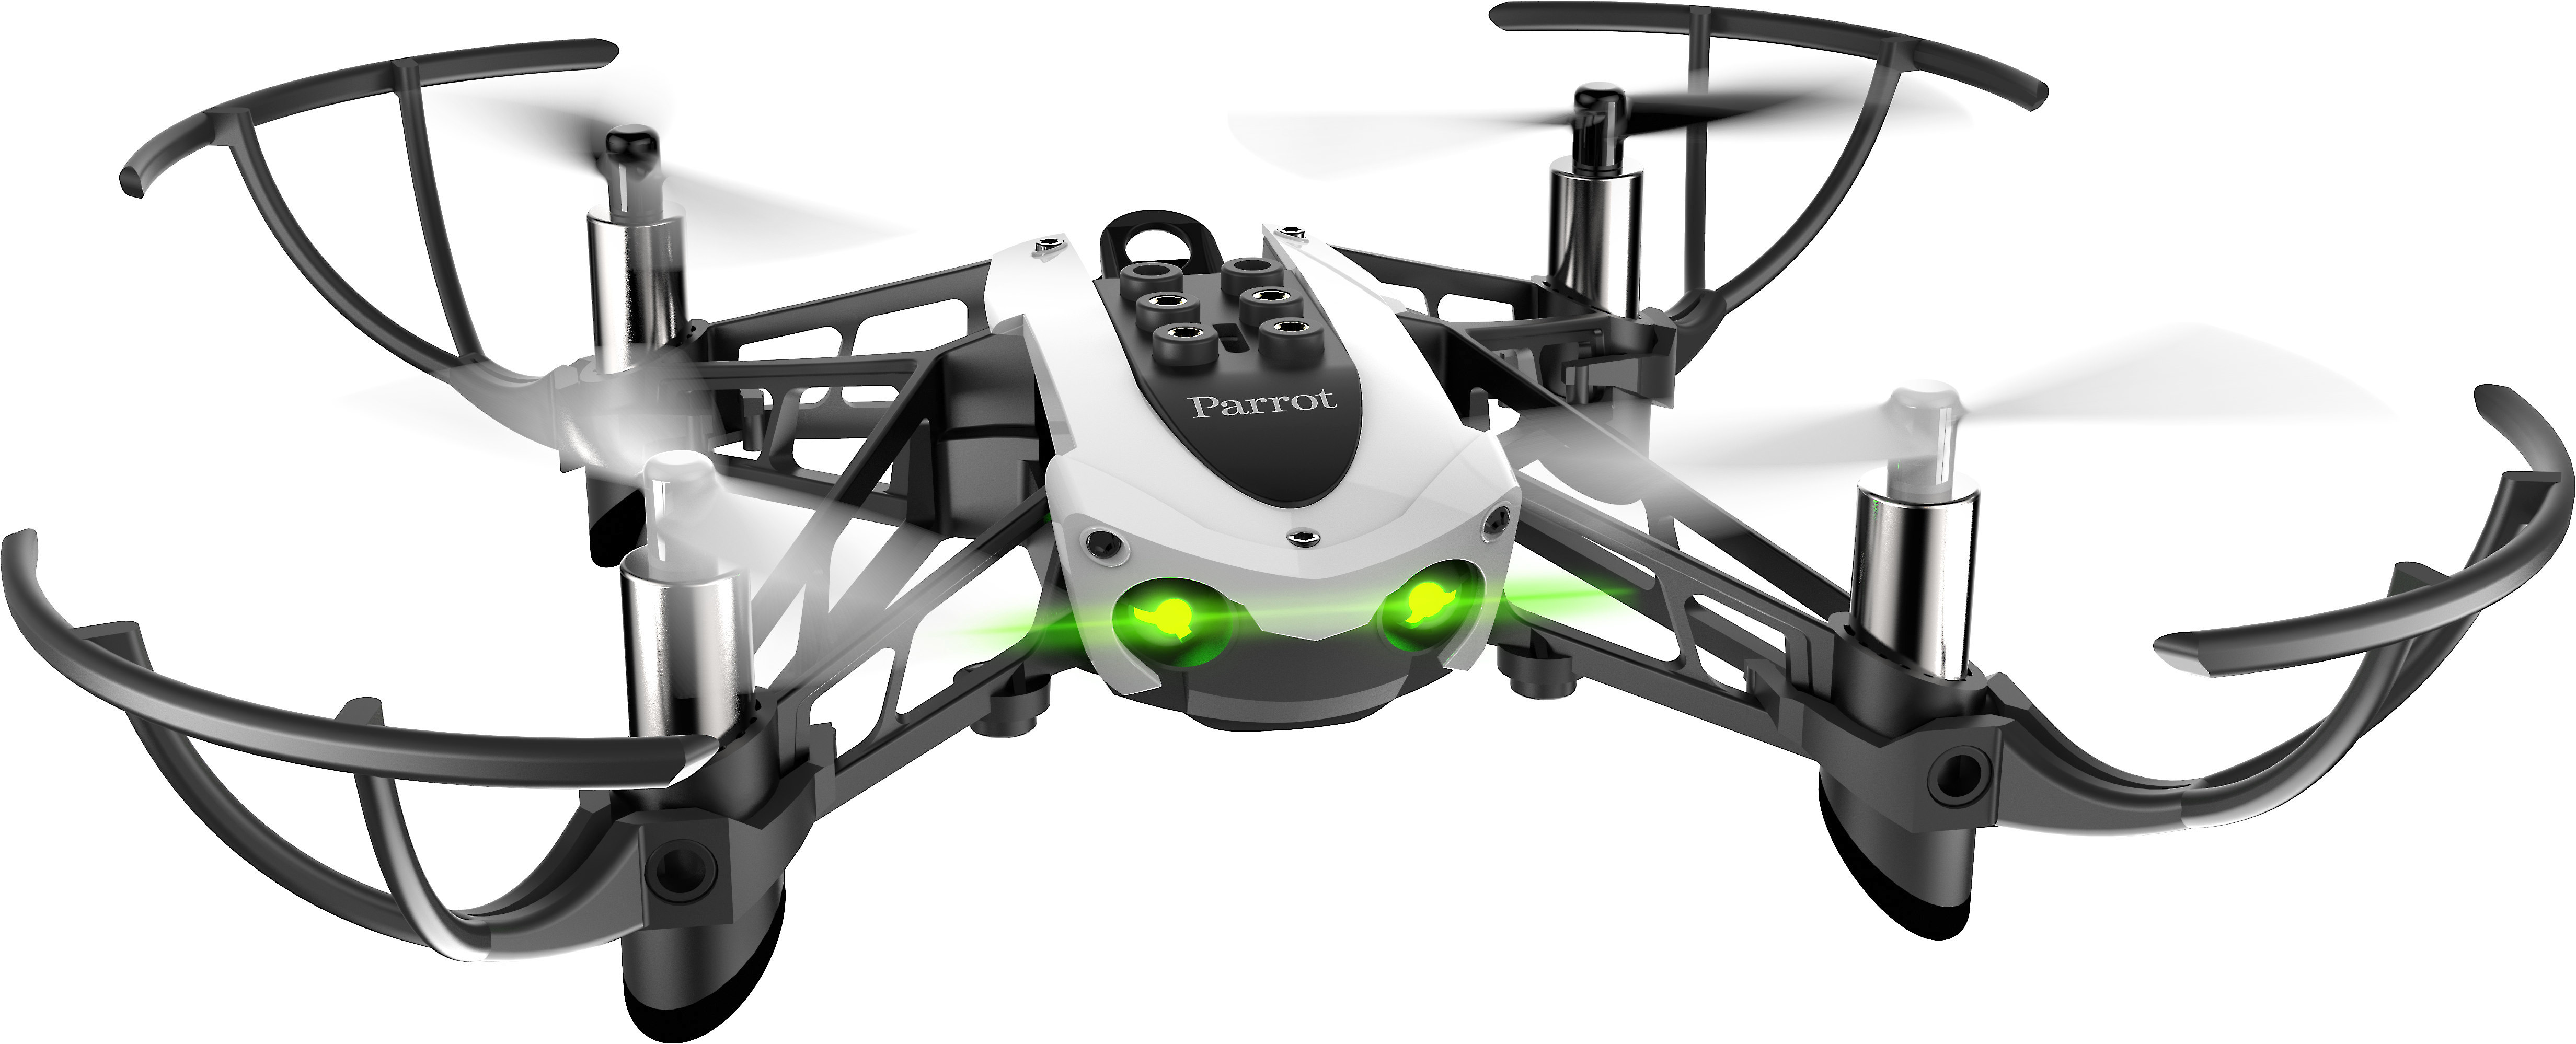 Parrot Mambo Fly Drone Compact Maneuverable Mini Drone At